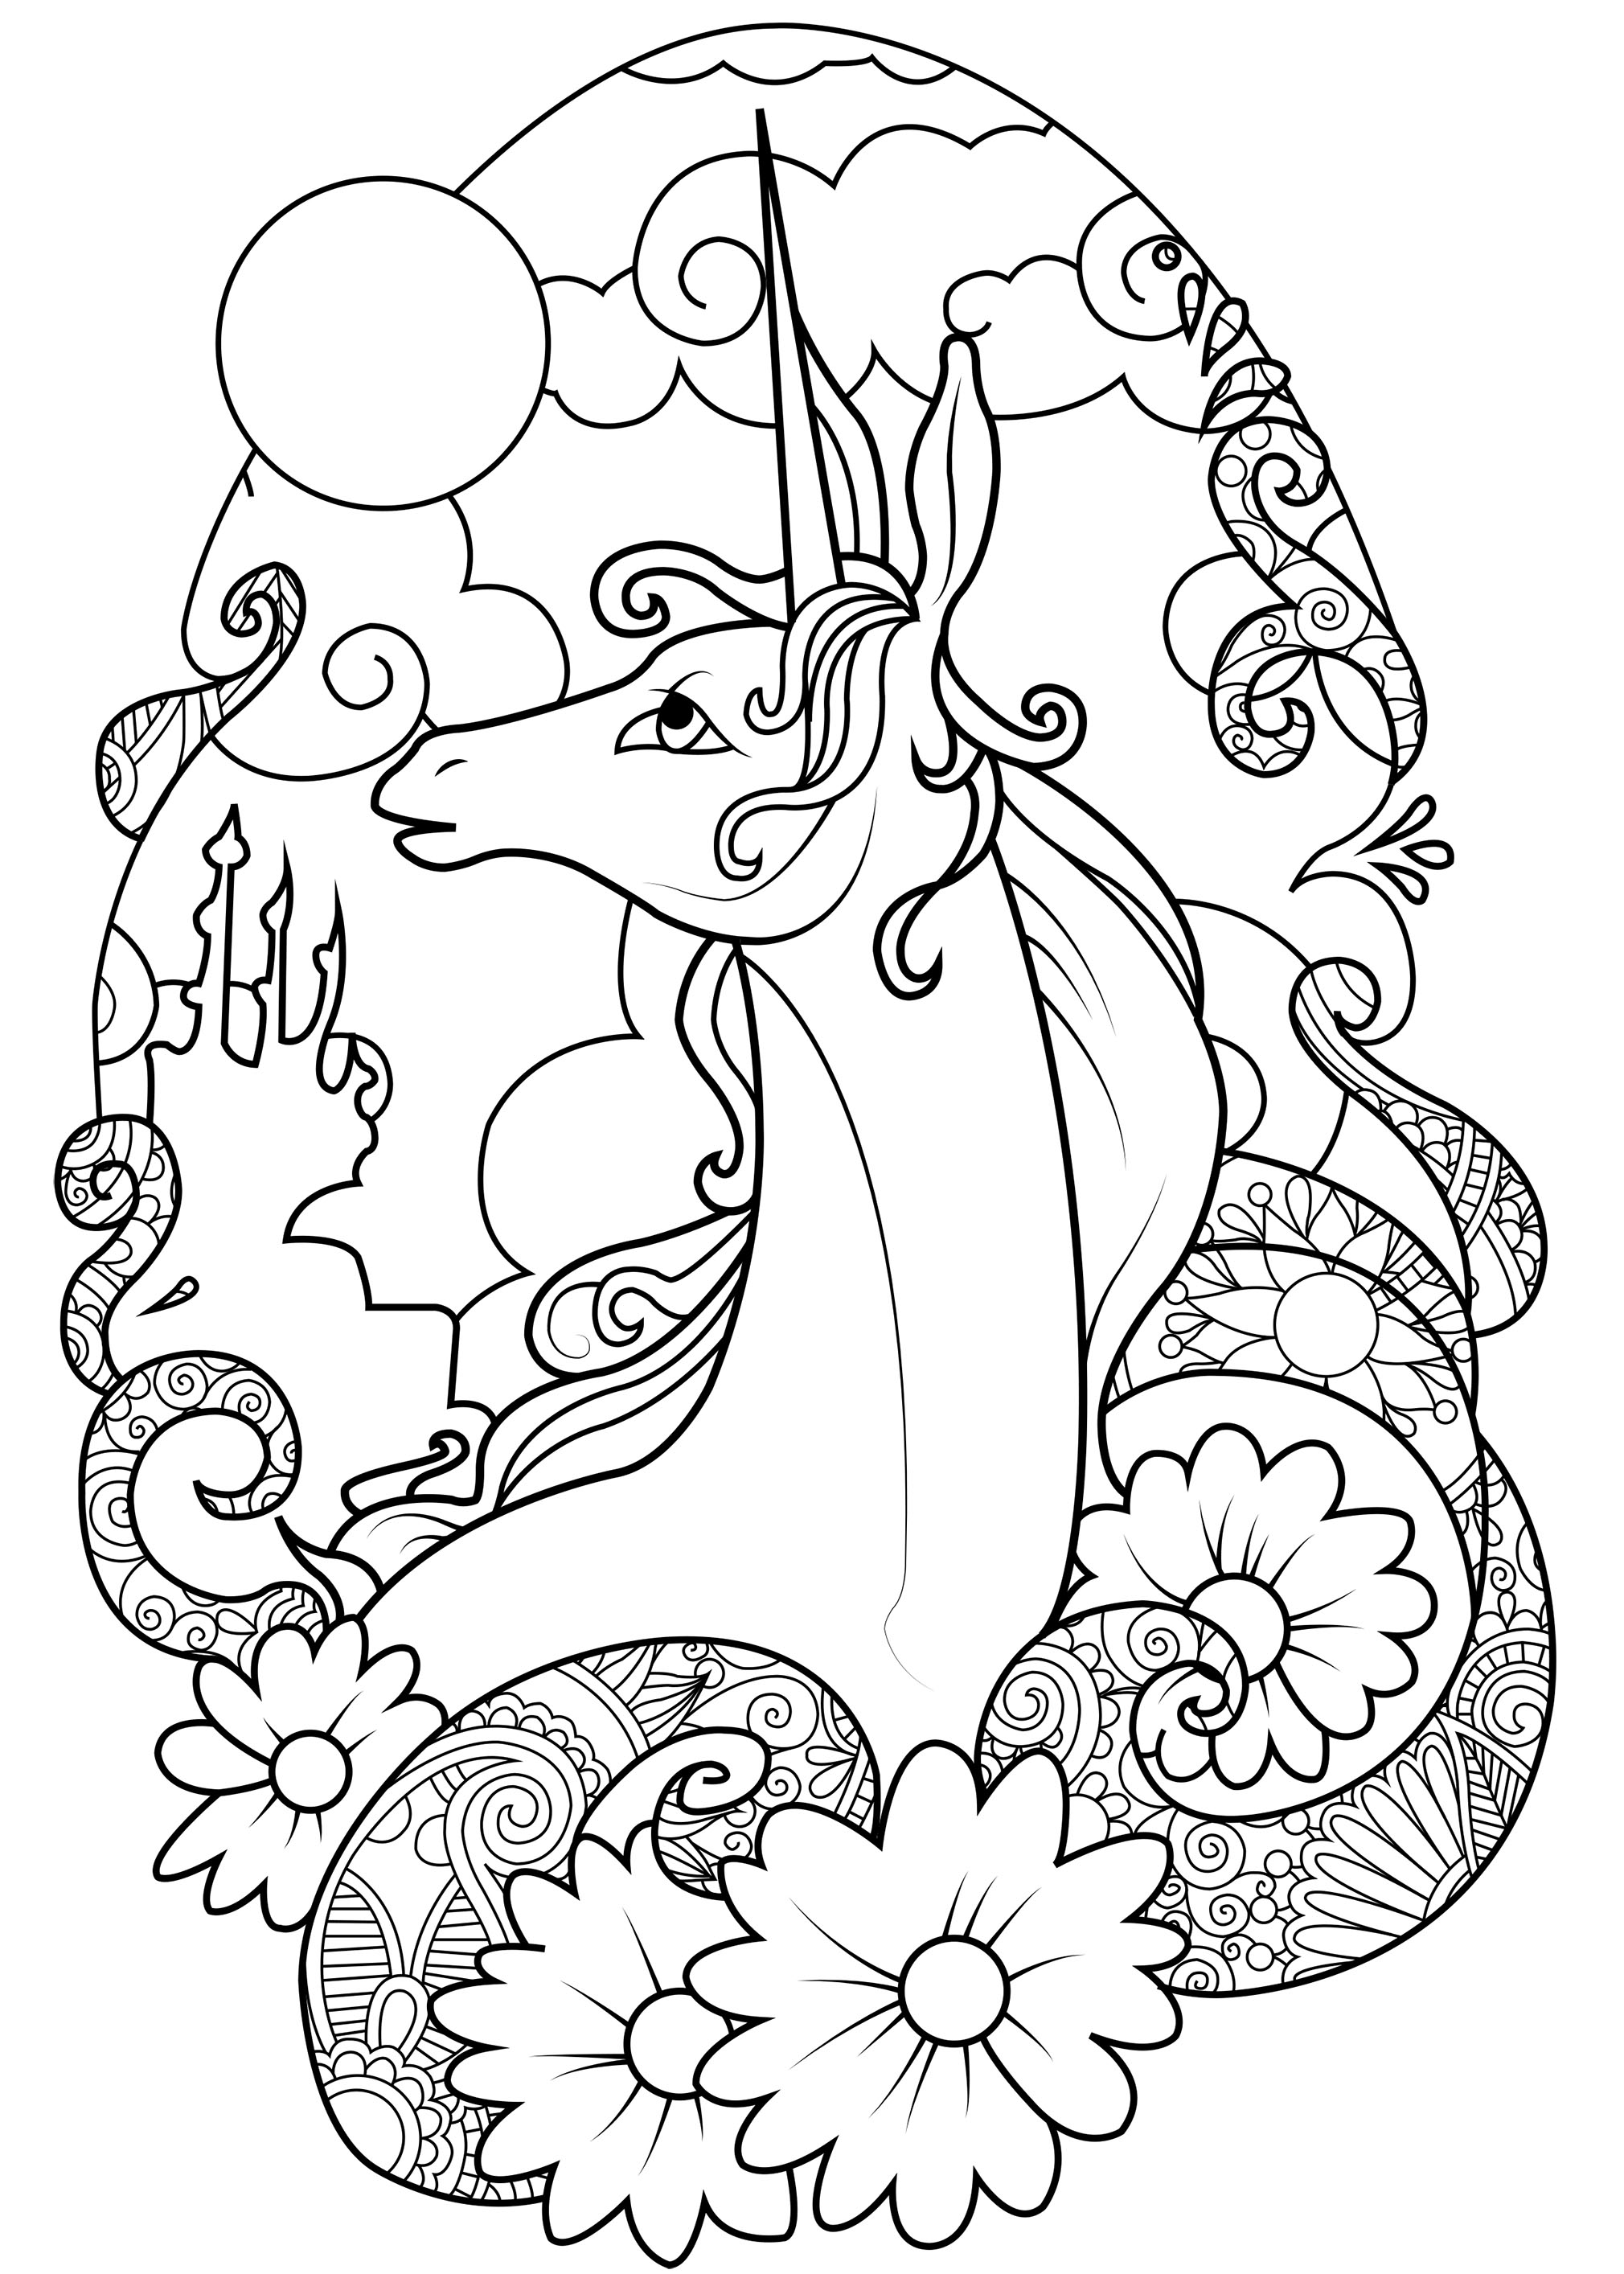 Fairy And Unicorn Coloring Pages For Adults Sere Selphee Co